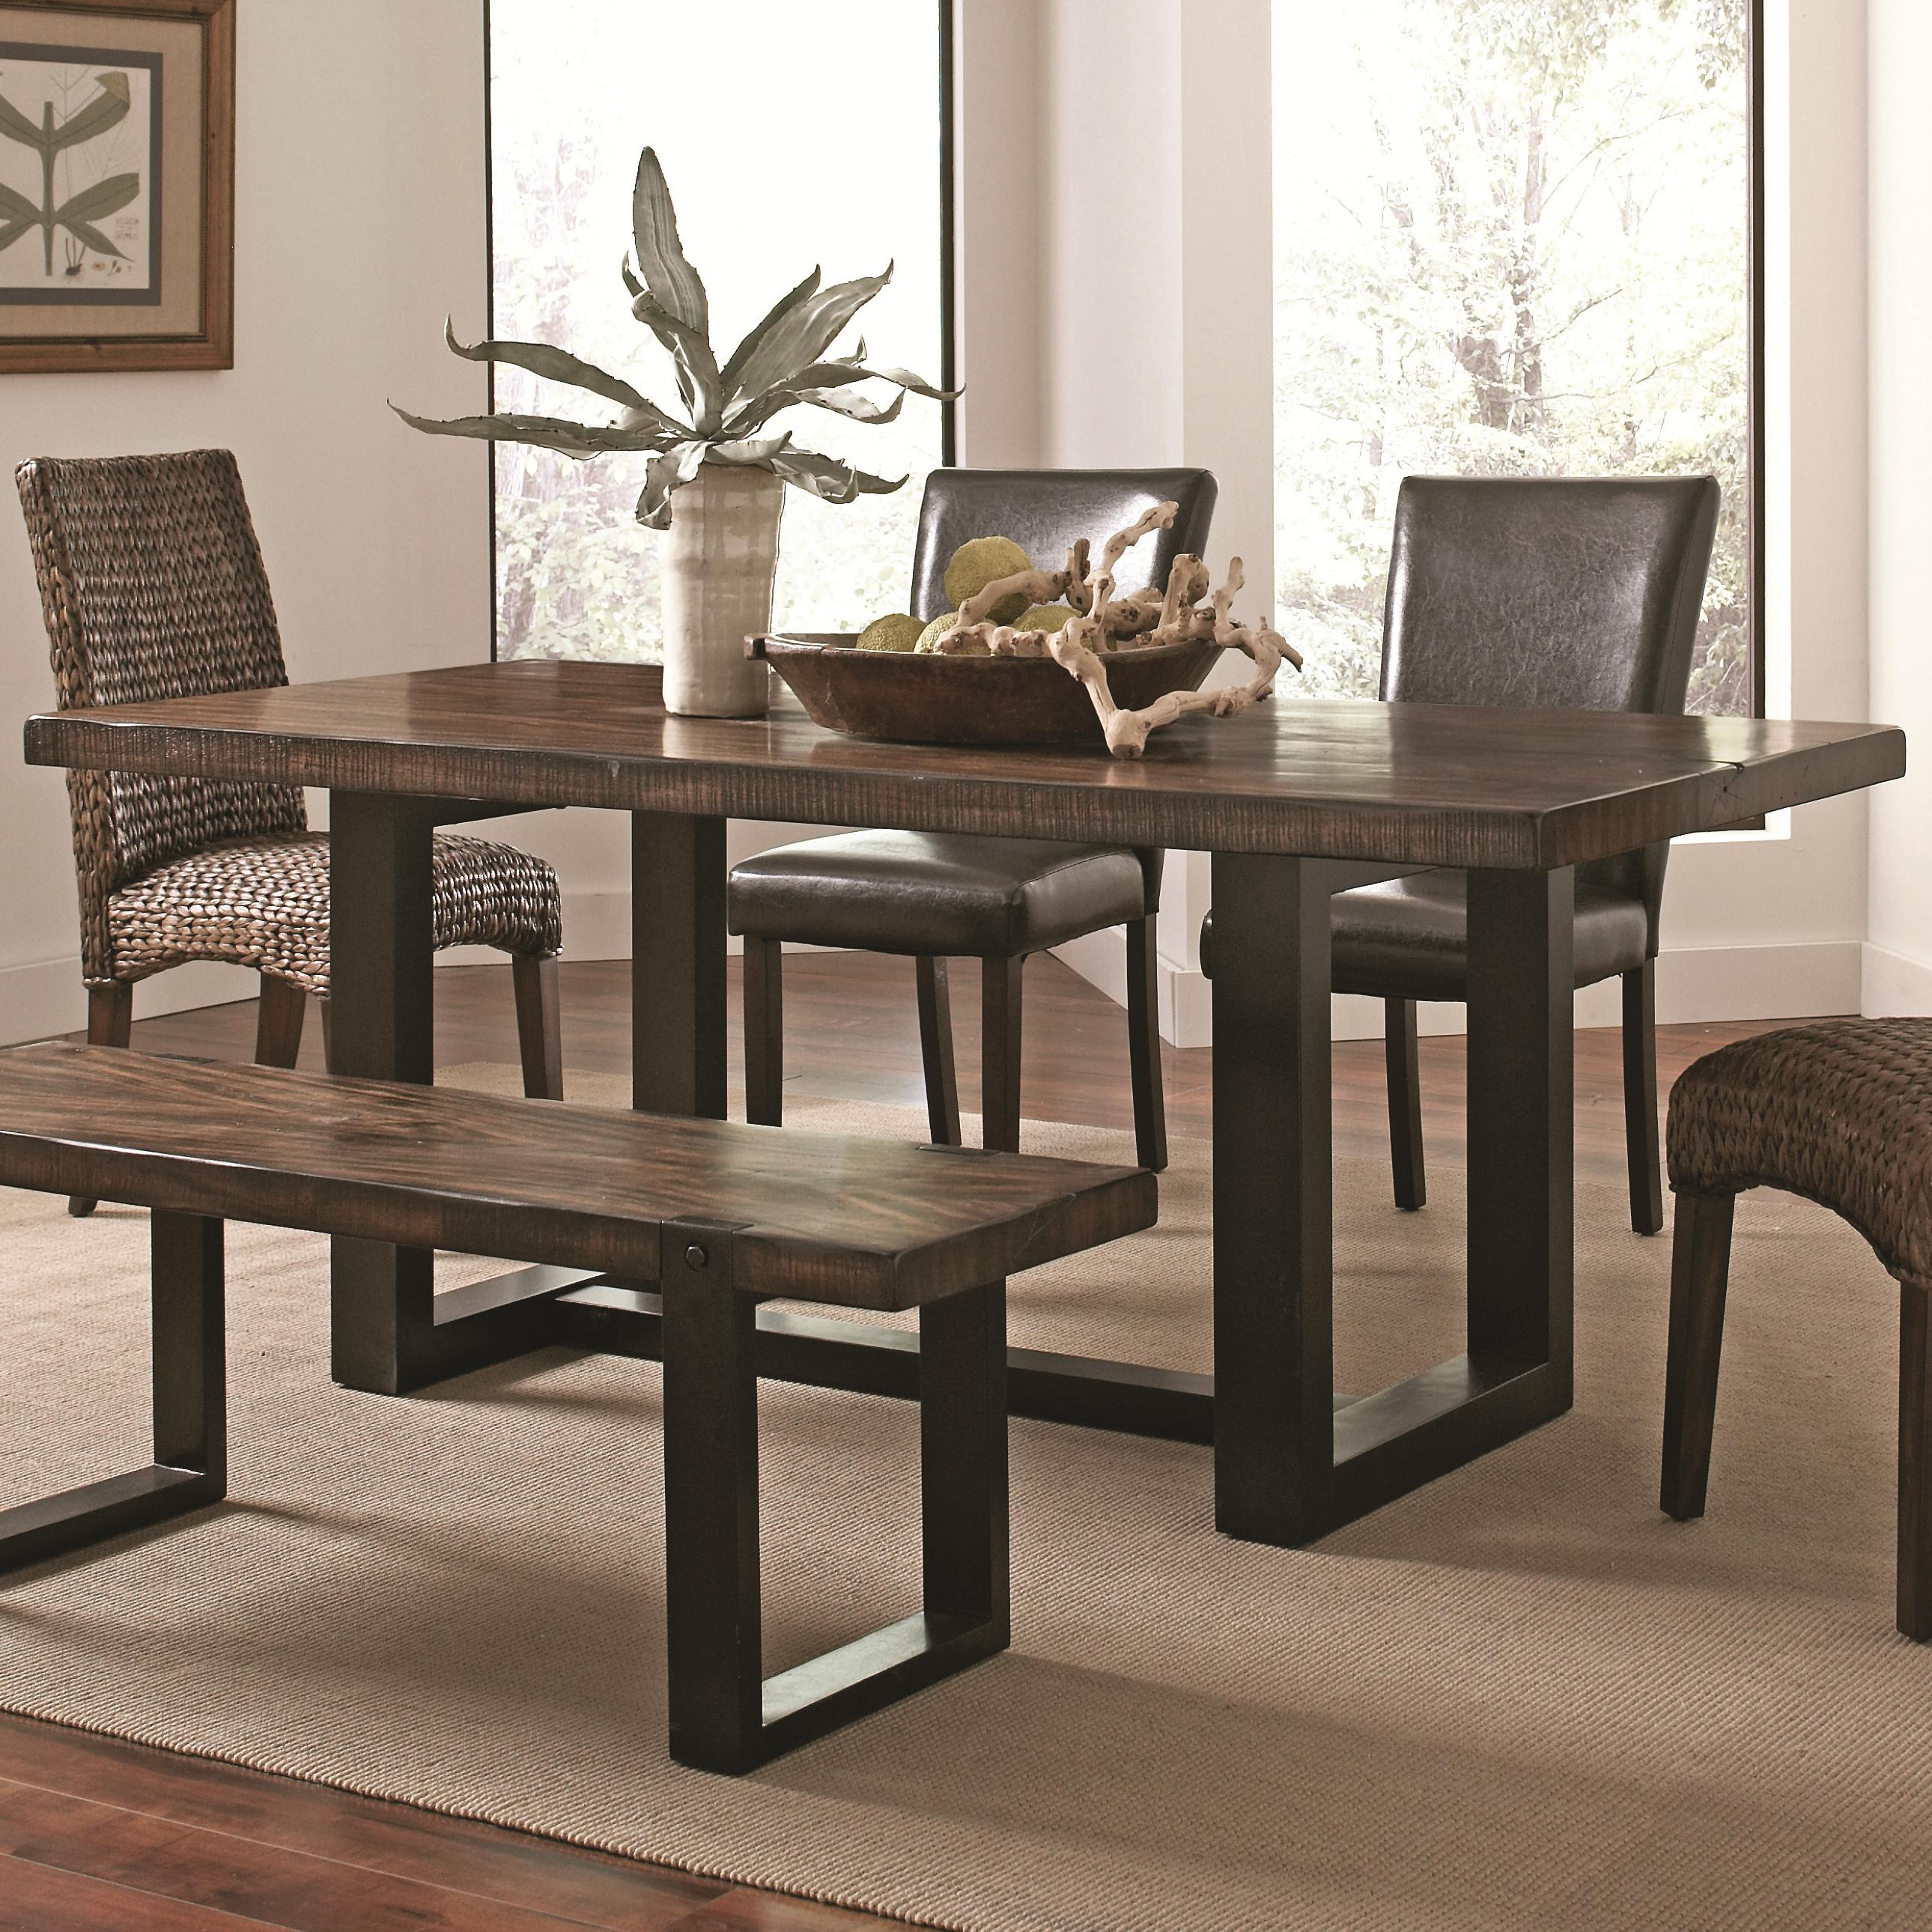 Coaster Westbrook Dining Casual Rustic Dining Table Del Sol